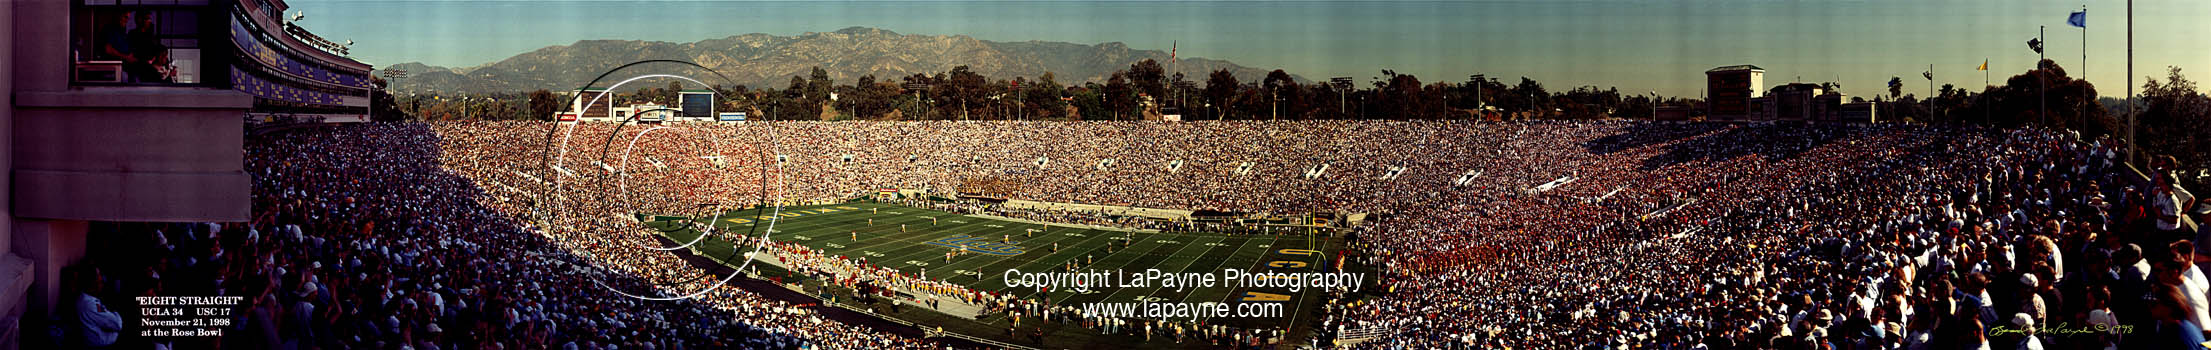 UCLA vs. USC Eight Straight 1998, Rose Bowl Panorama